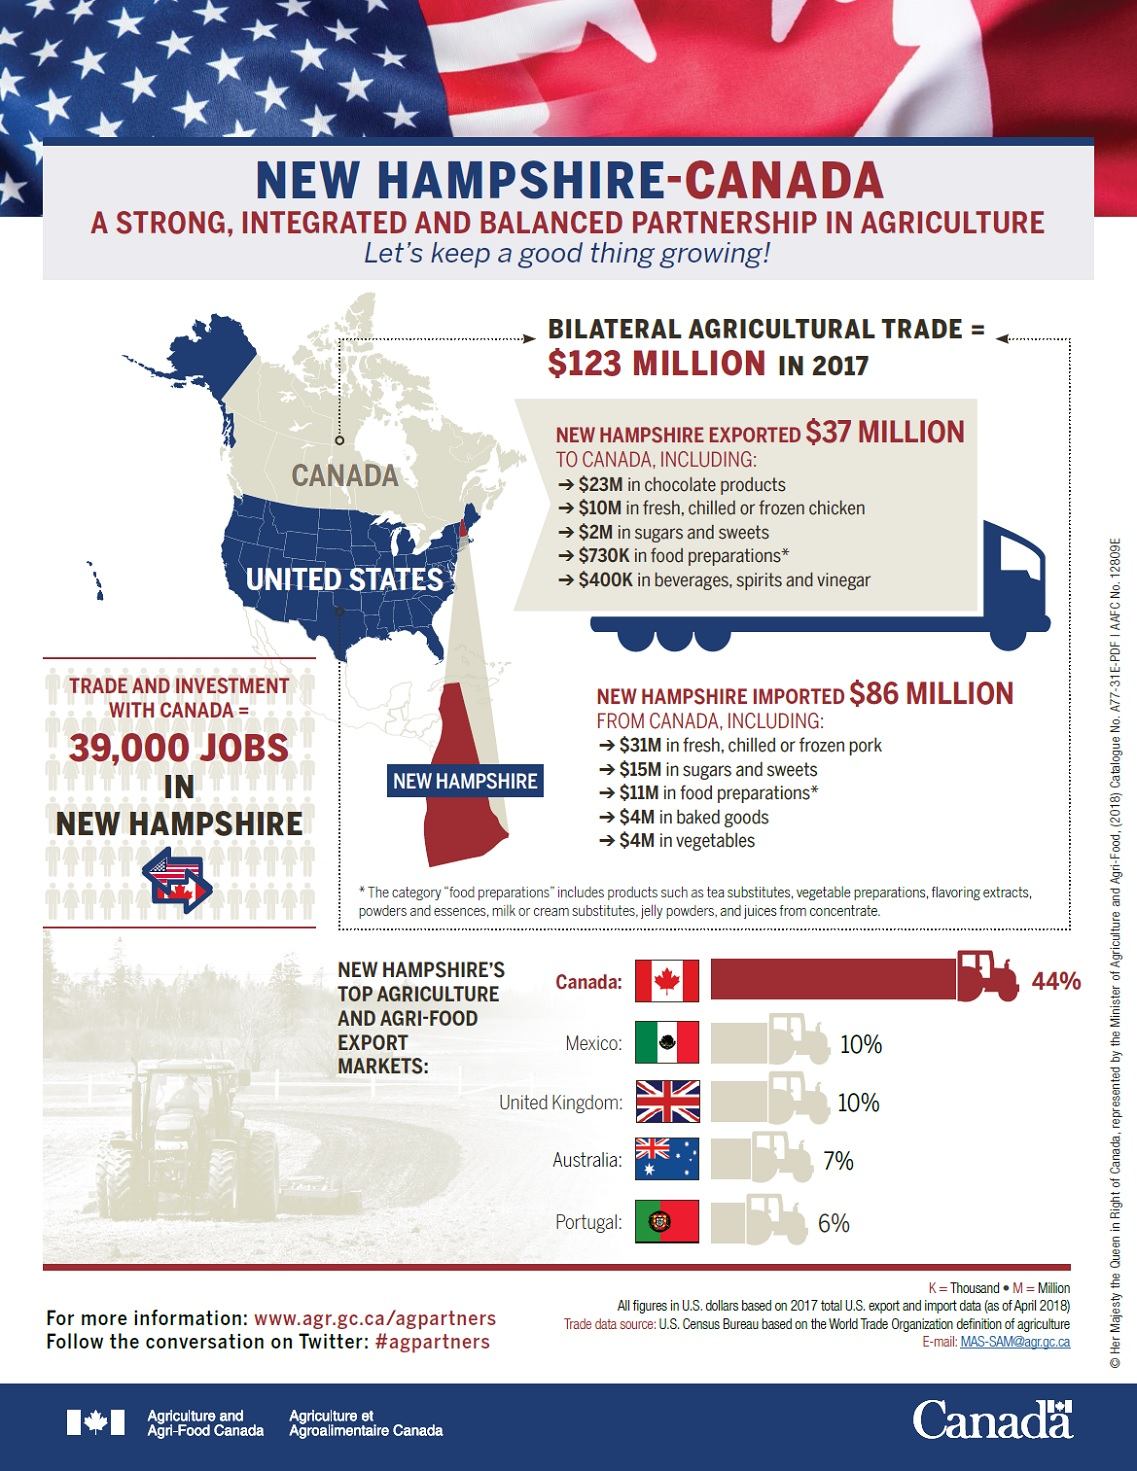 New Hampshire-Canada agricultural trade - Agriculture and Agri-Food